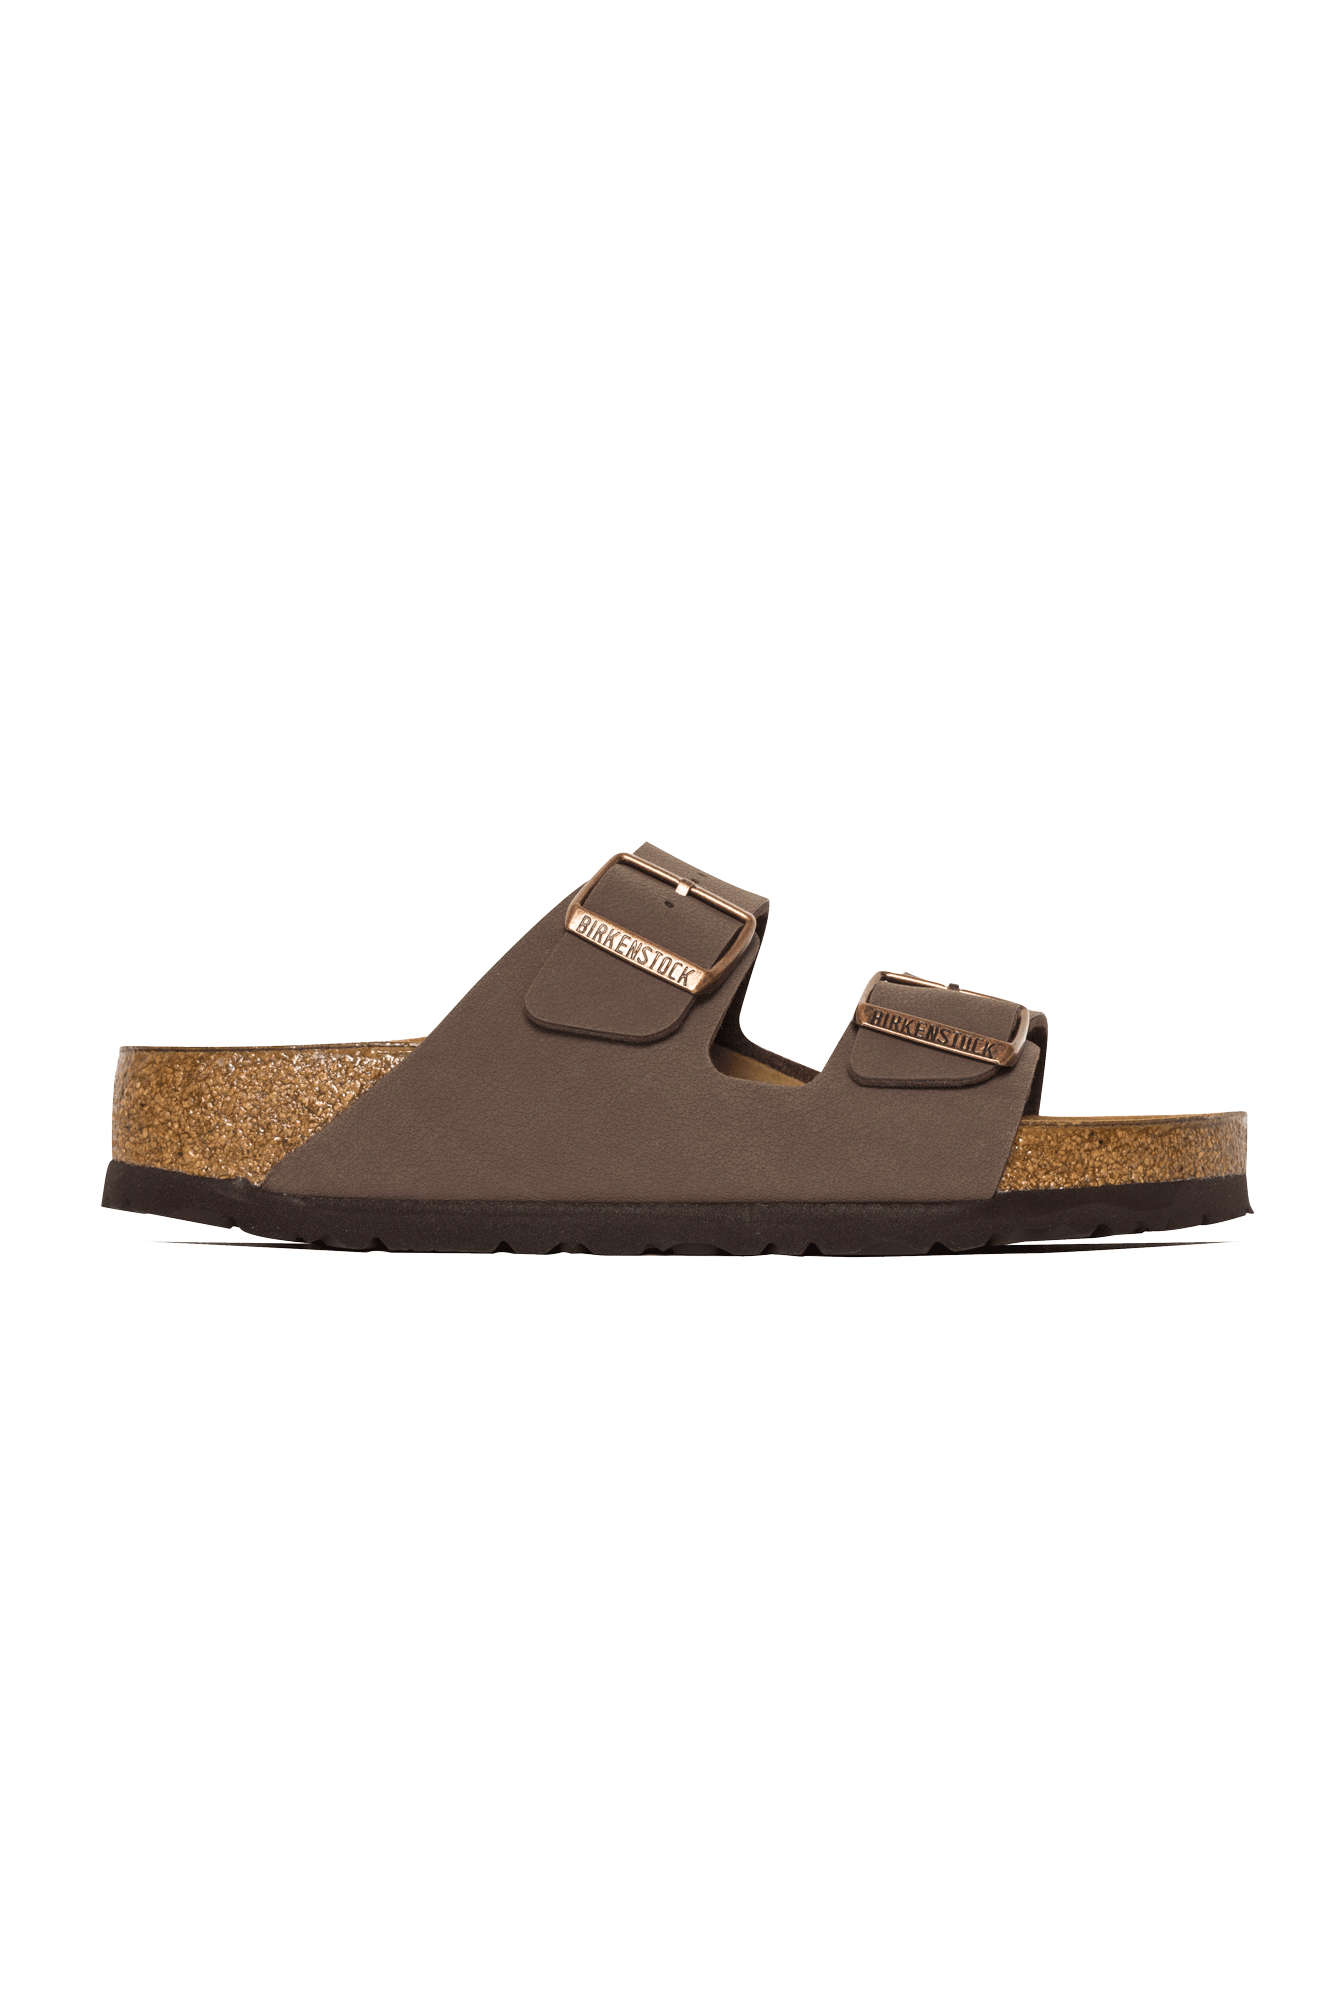 Birkenstock Sandali & Ciabatte Arizona Marrone Marrone - One Block Down